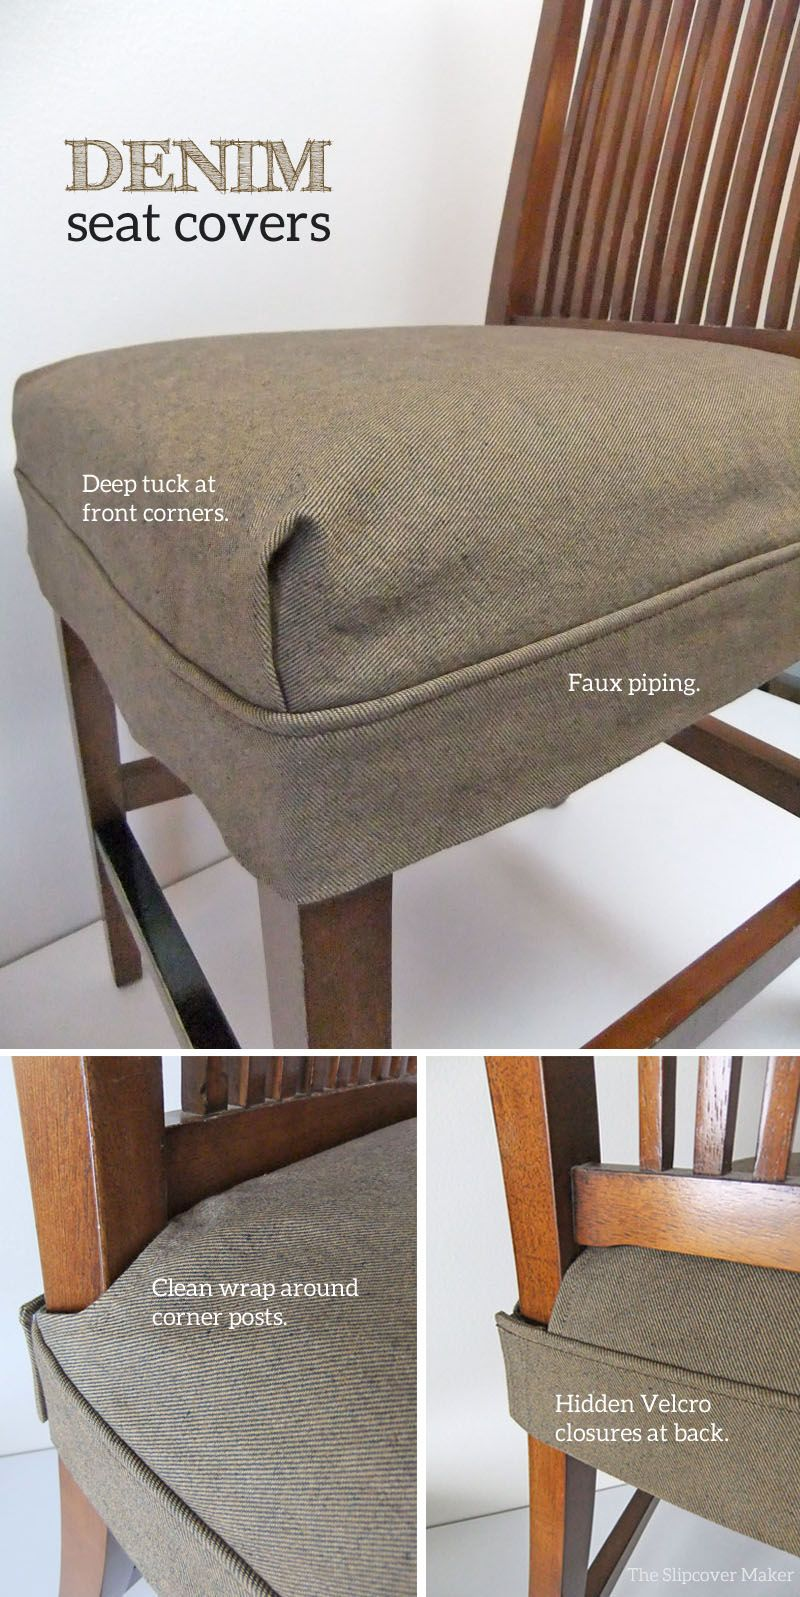 Tailored Denim Seat Covers | chairs | Pinterest | Seat covers ...